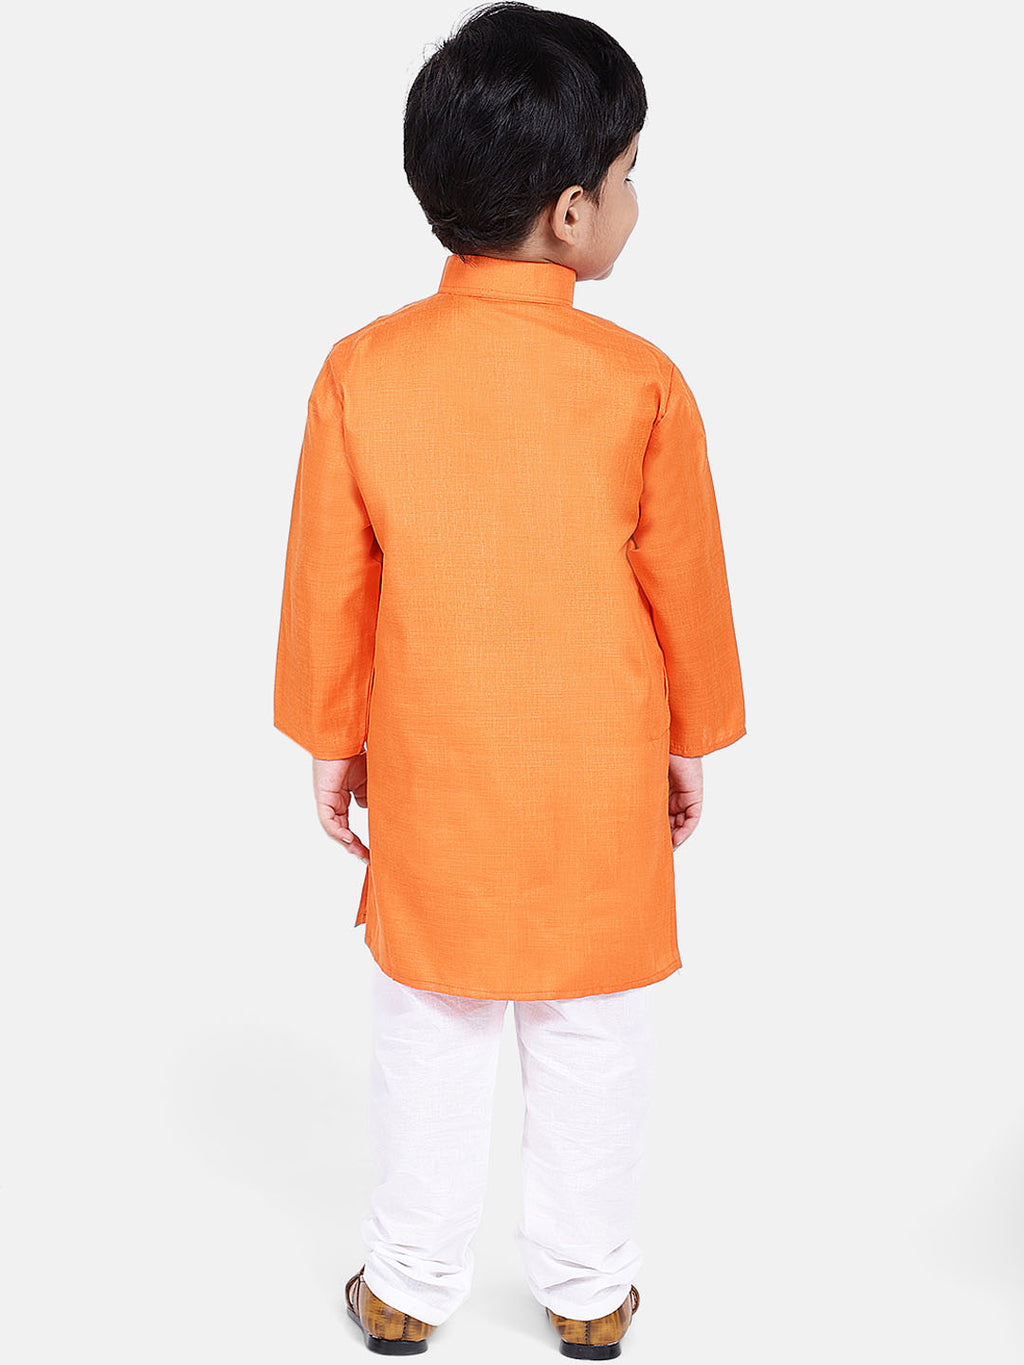 Stand Collar Cotton Kurta pajama-Orange